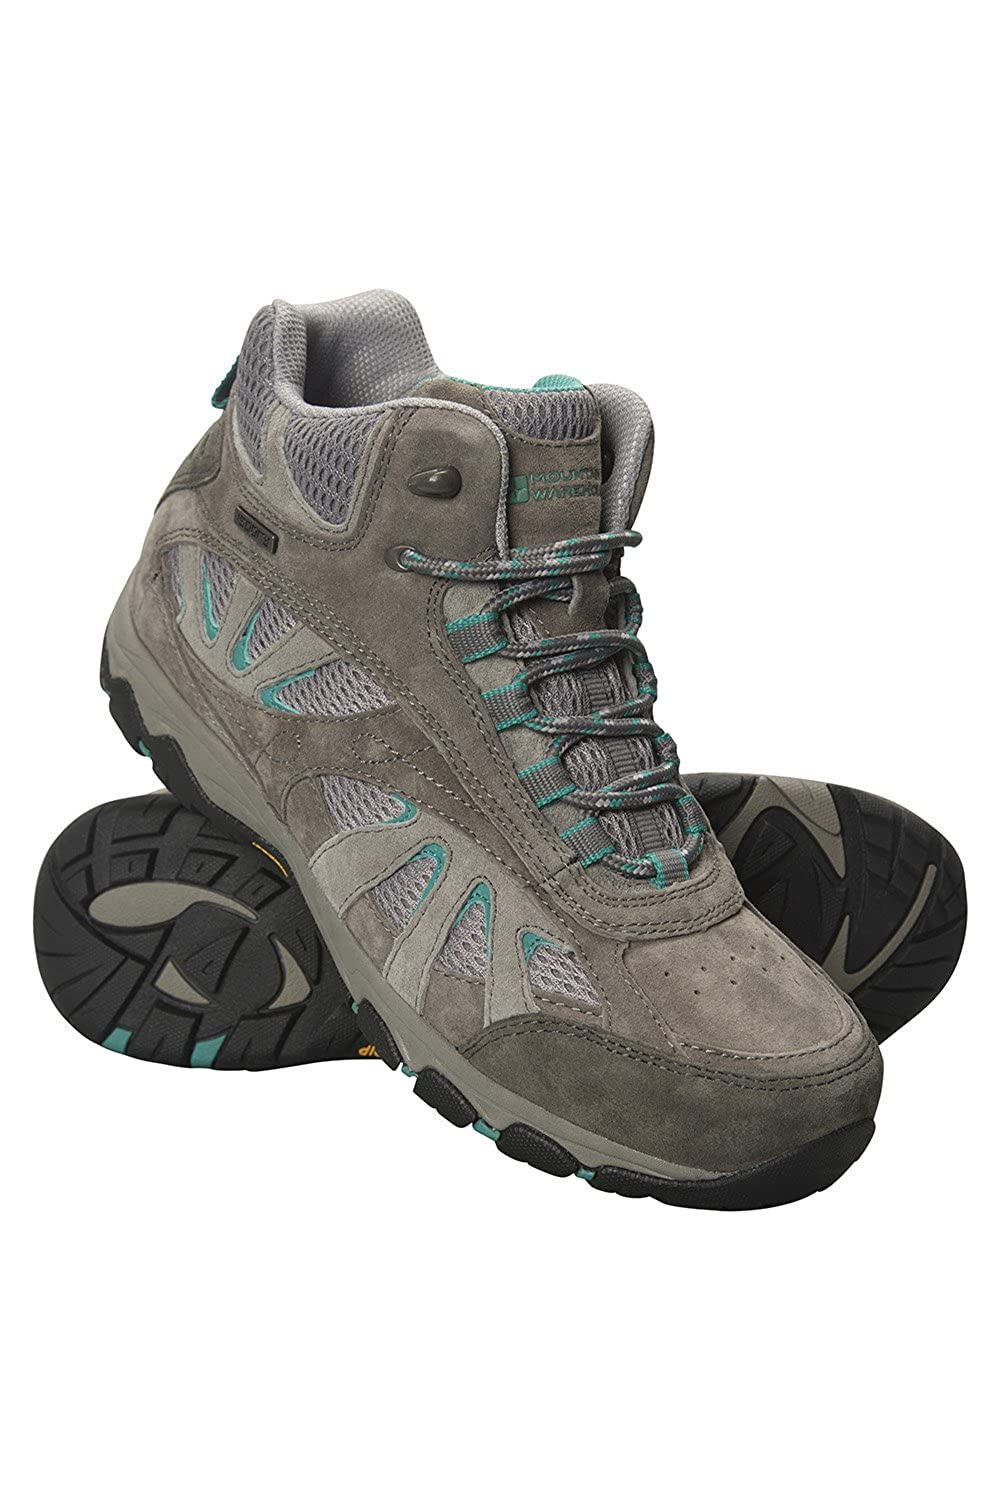 Mountain Warehouse Summit Womens Boots -Waterproof Ladies Shoes